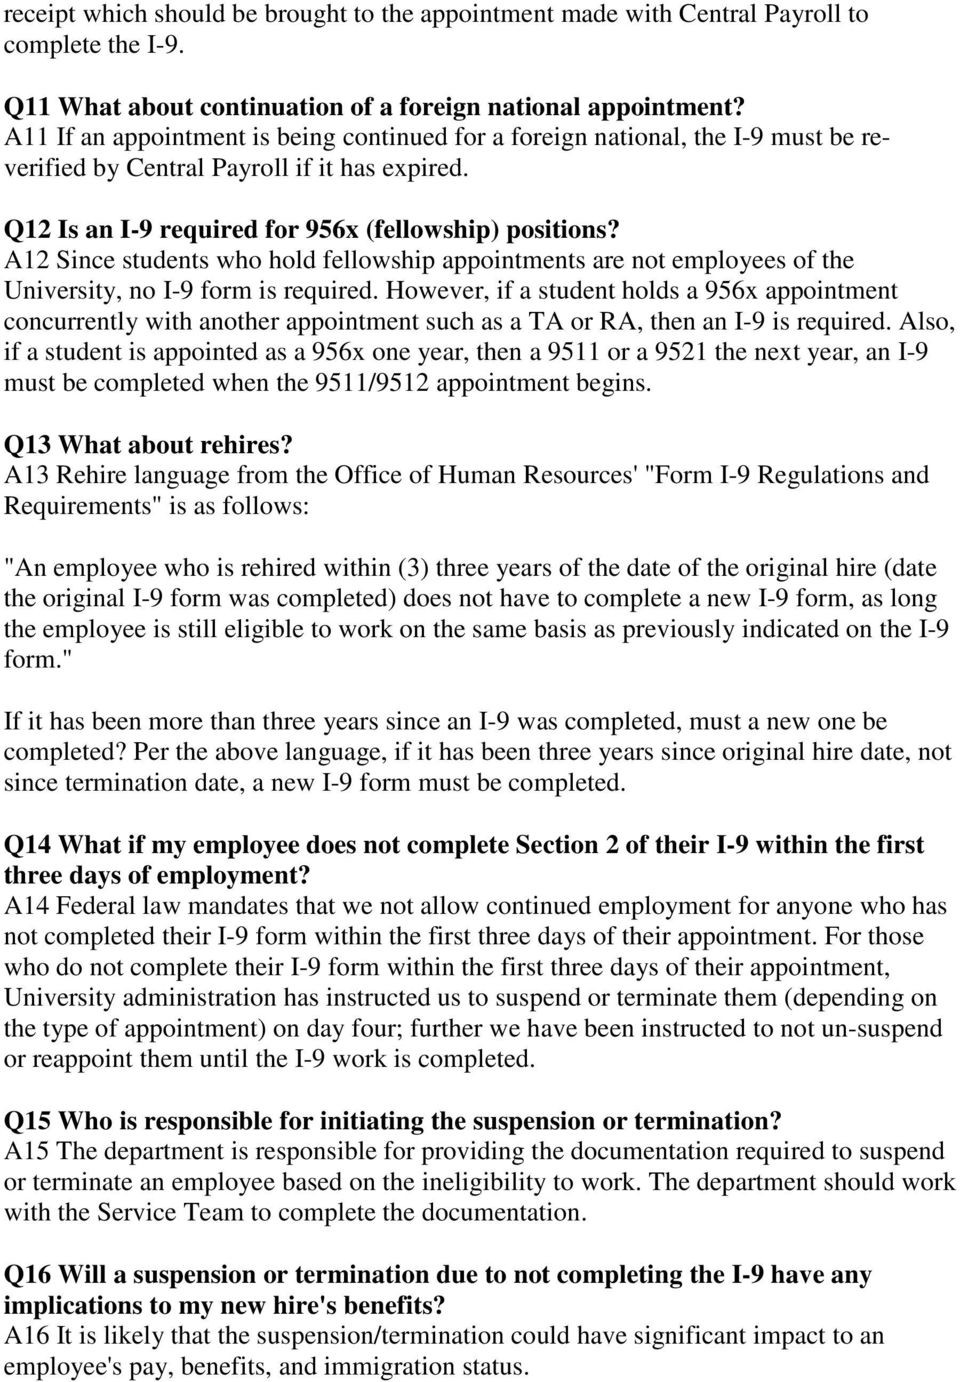 I-11 Requirements and Compliance with Federal Law - PDF